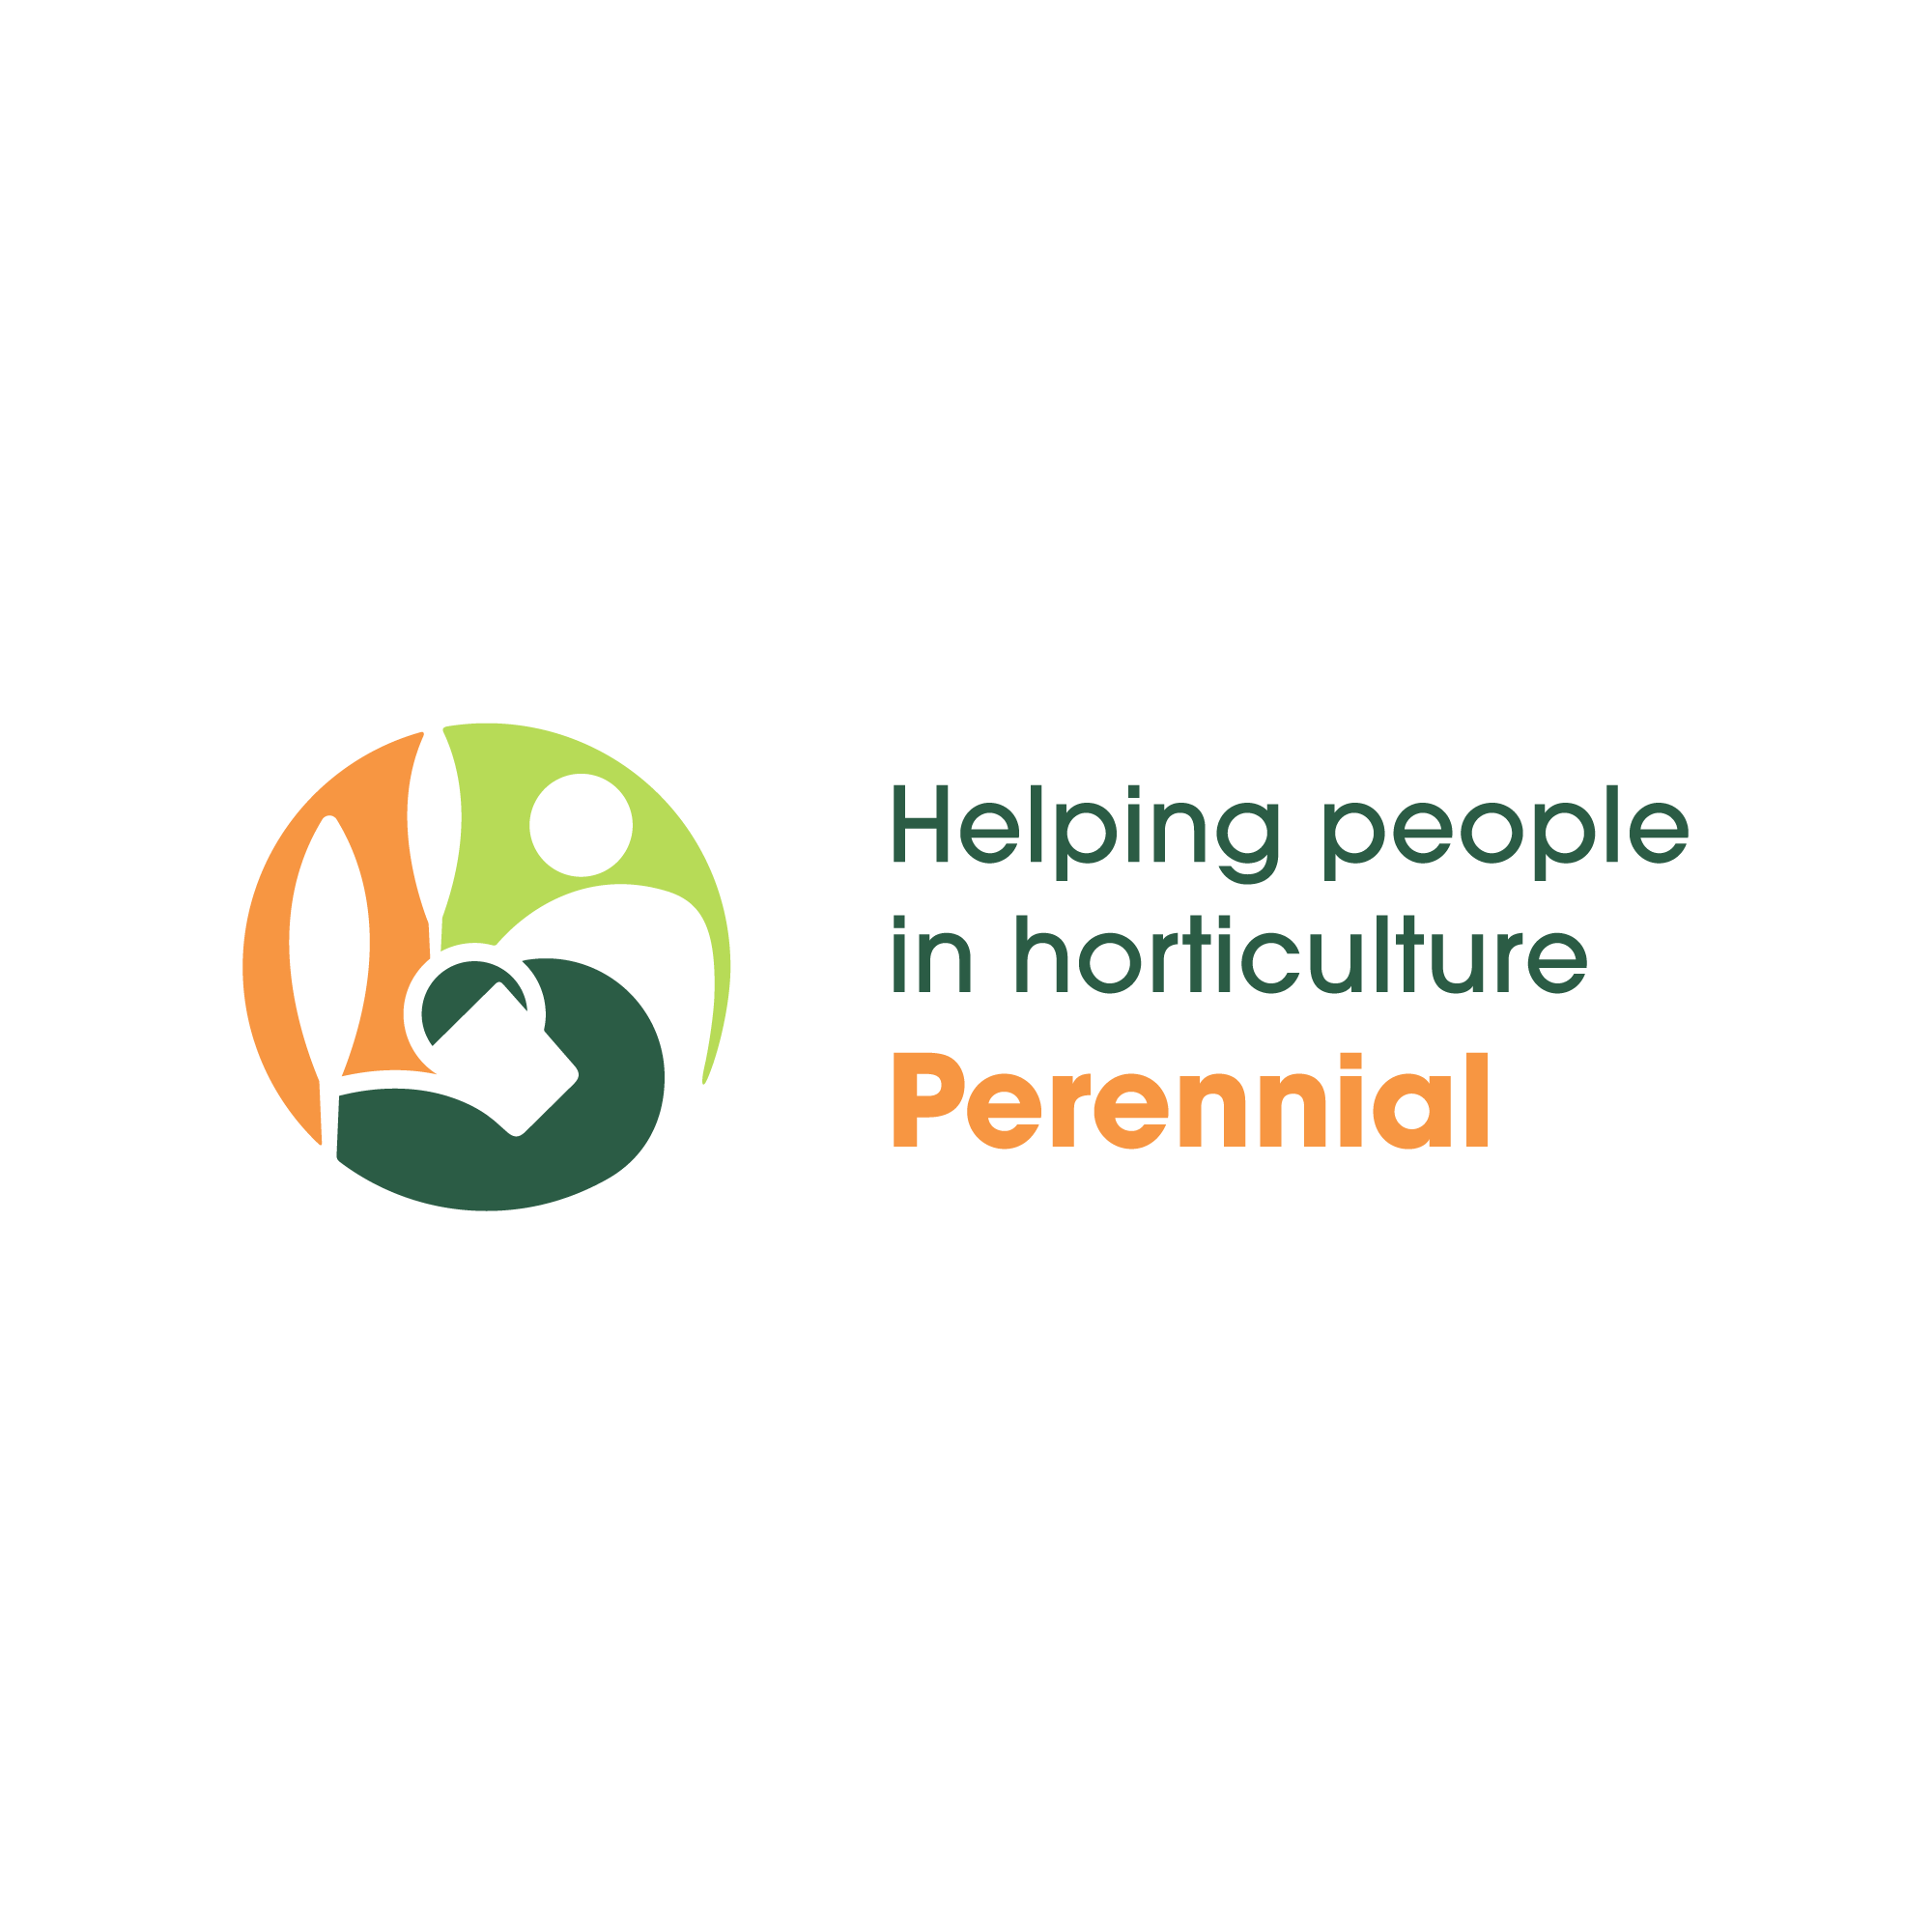 Perennial   We provide a comprehensive PR and communications service for Perennial, the UK charity for people in horticulture. We continue to help the charity raise its profile across the UK.